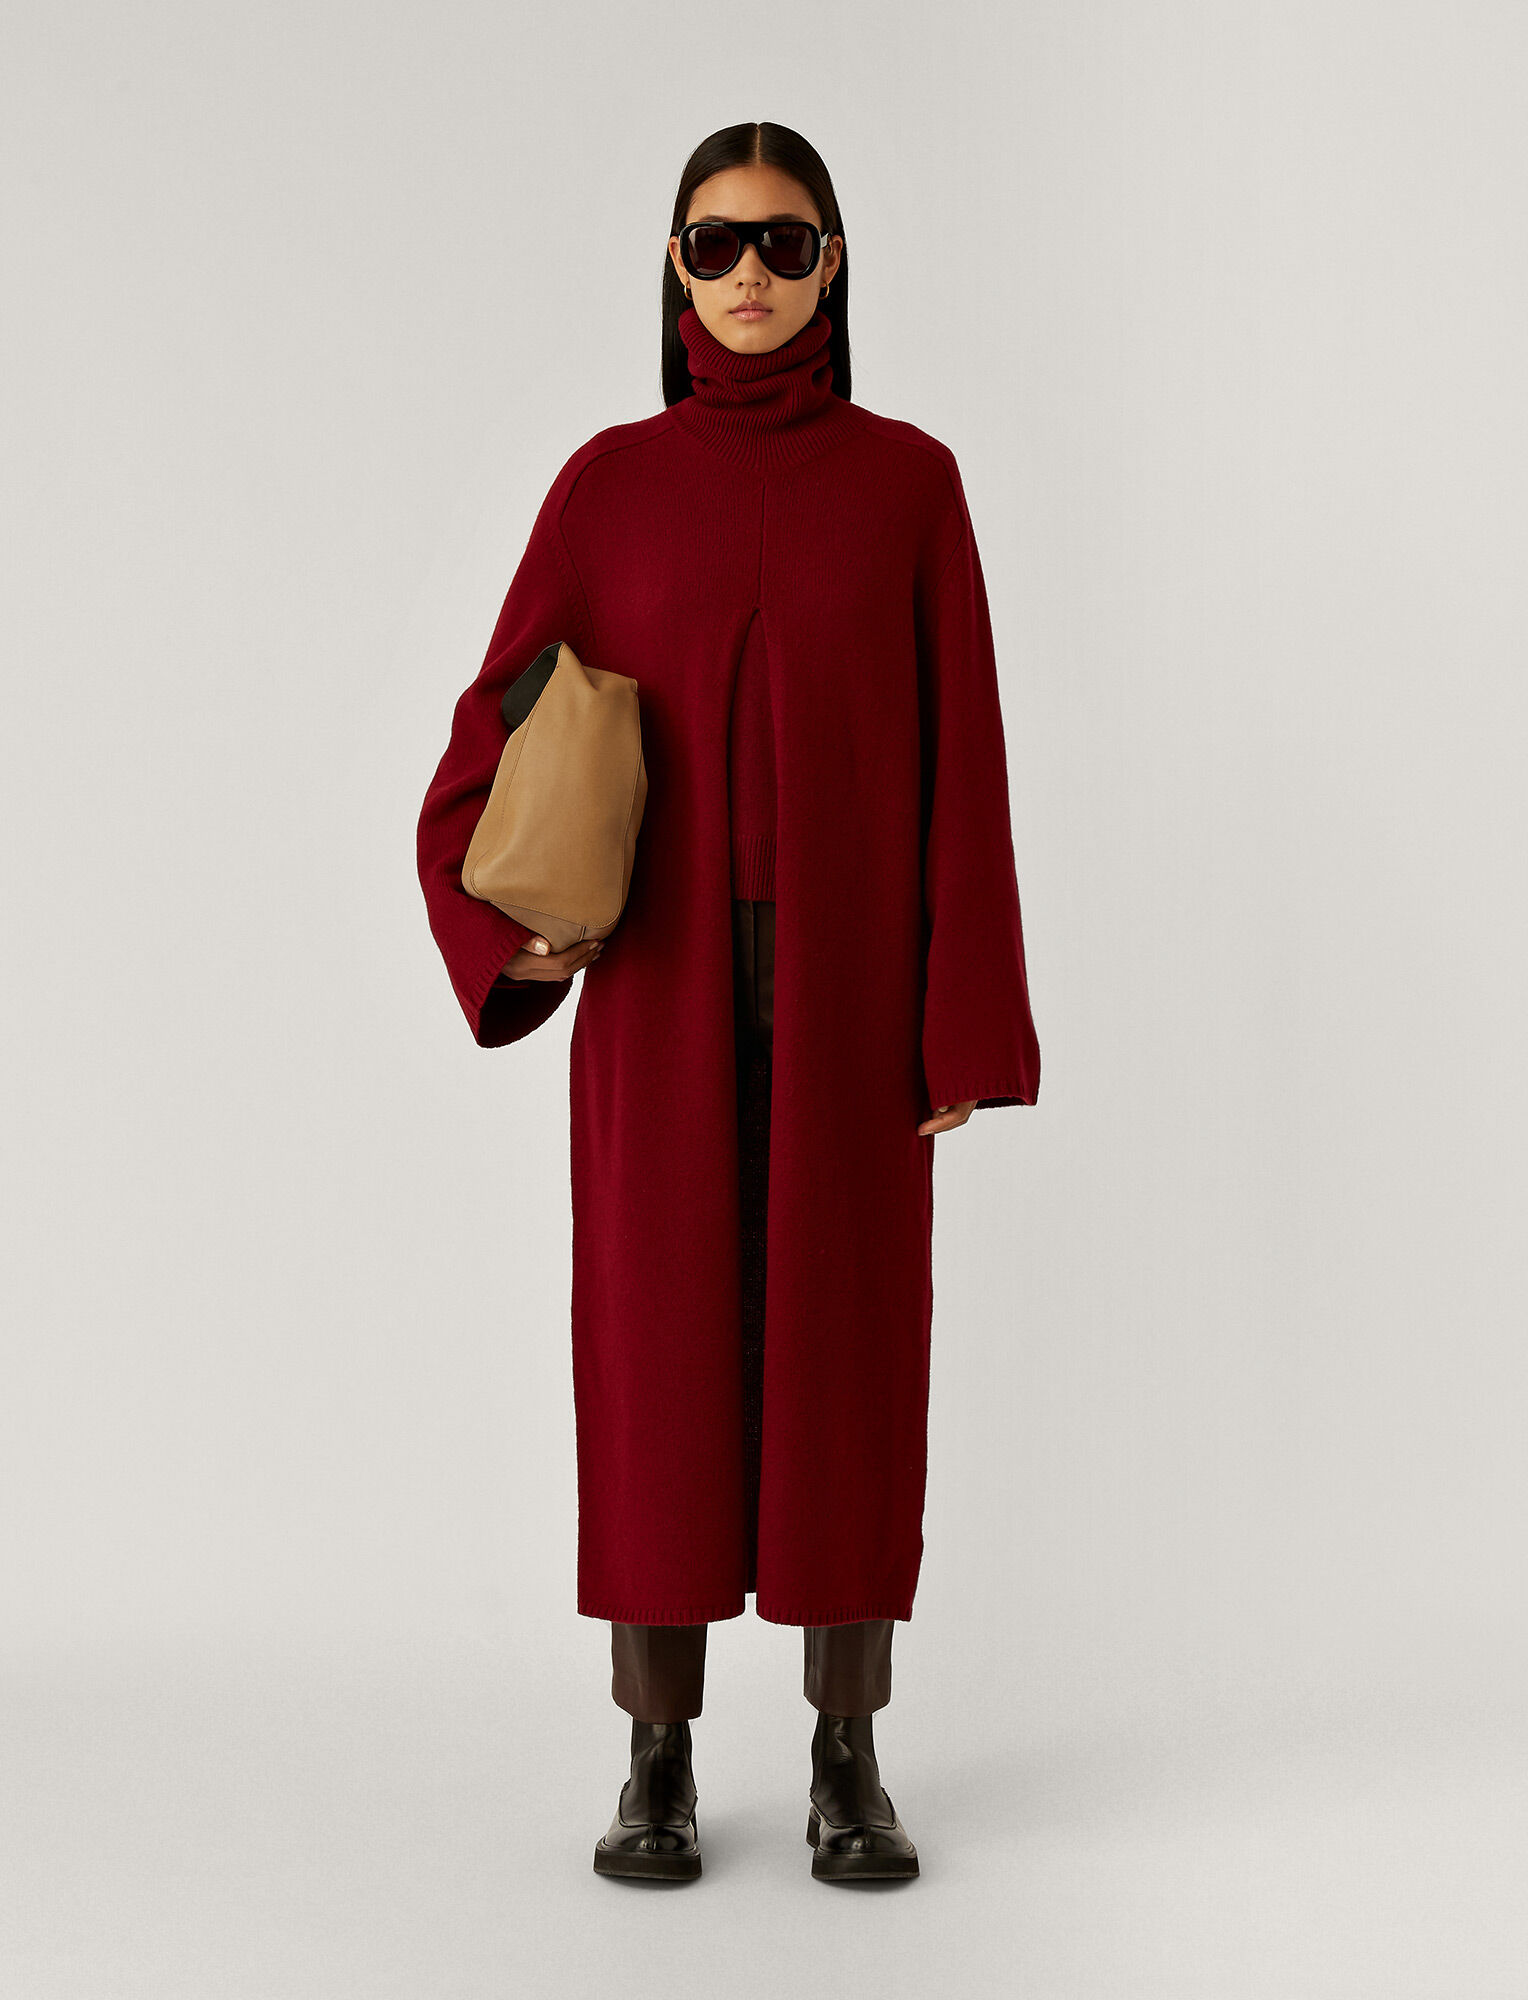 Joseph, Viviane O'Size Knit Dress, in Plum